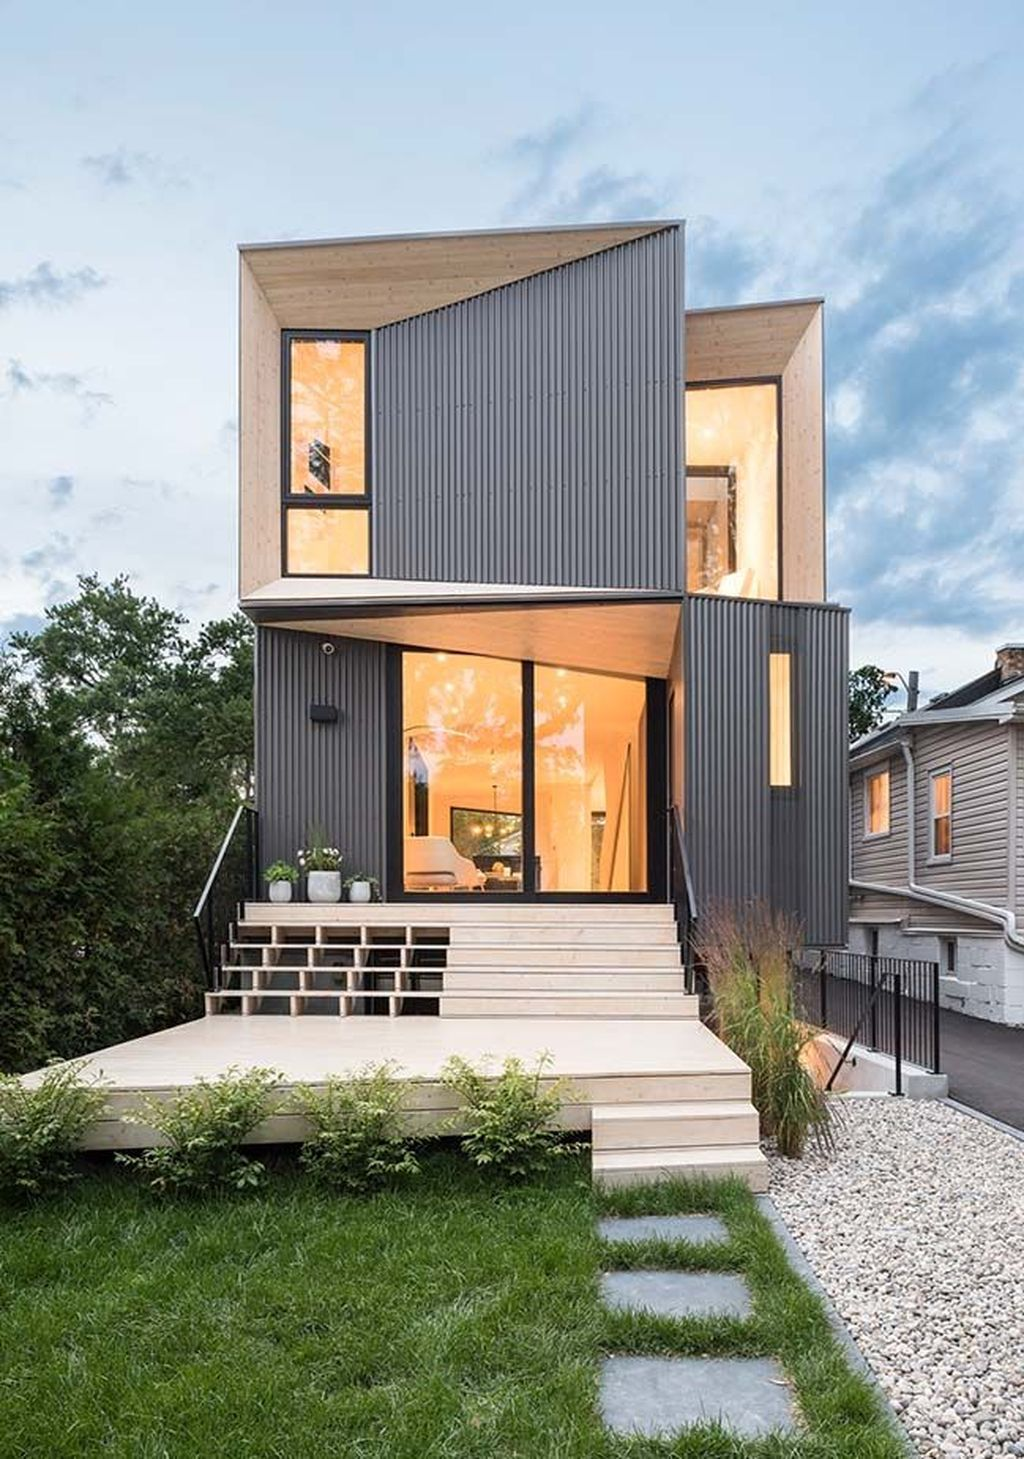 35 Awesome Small Contemporary House Designs Ideas To Try In 2020 (With Images)